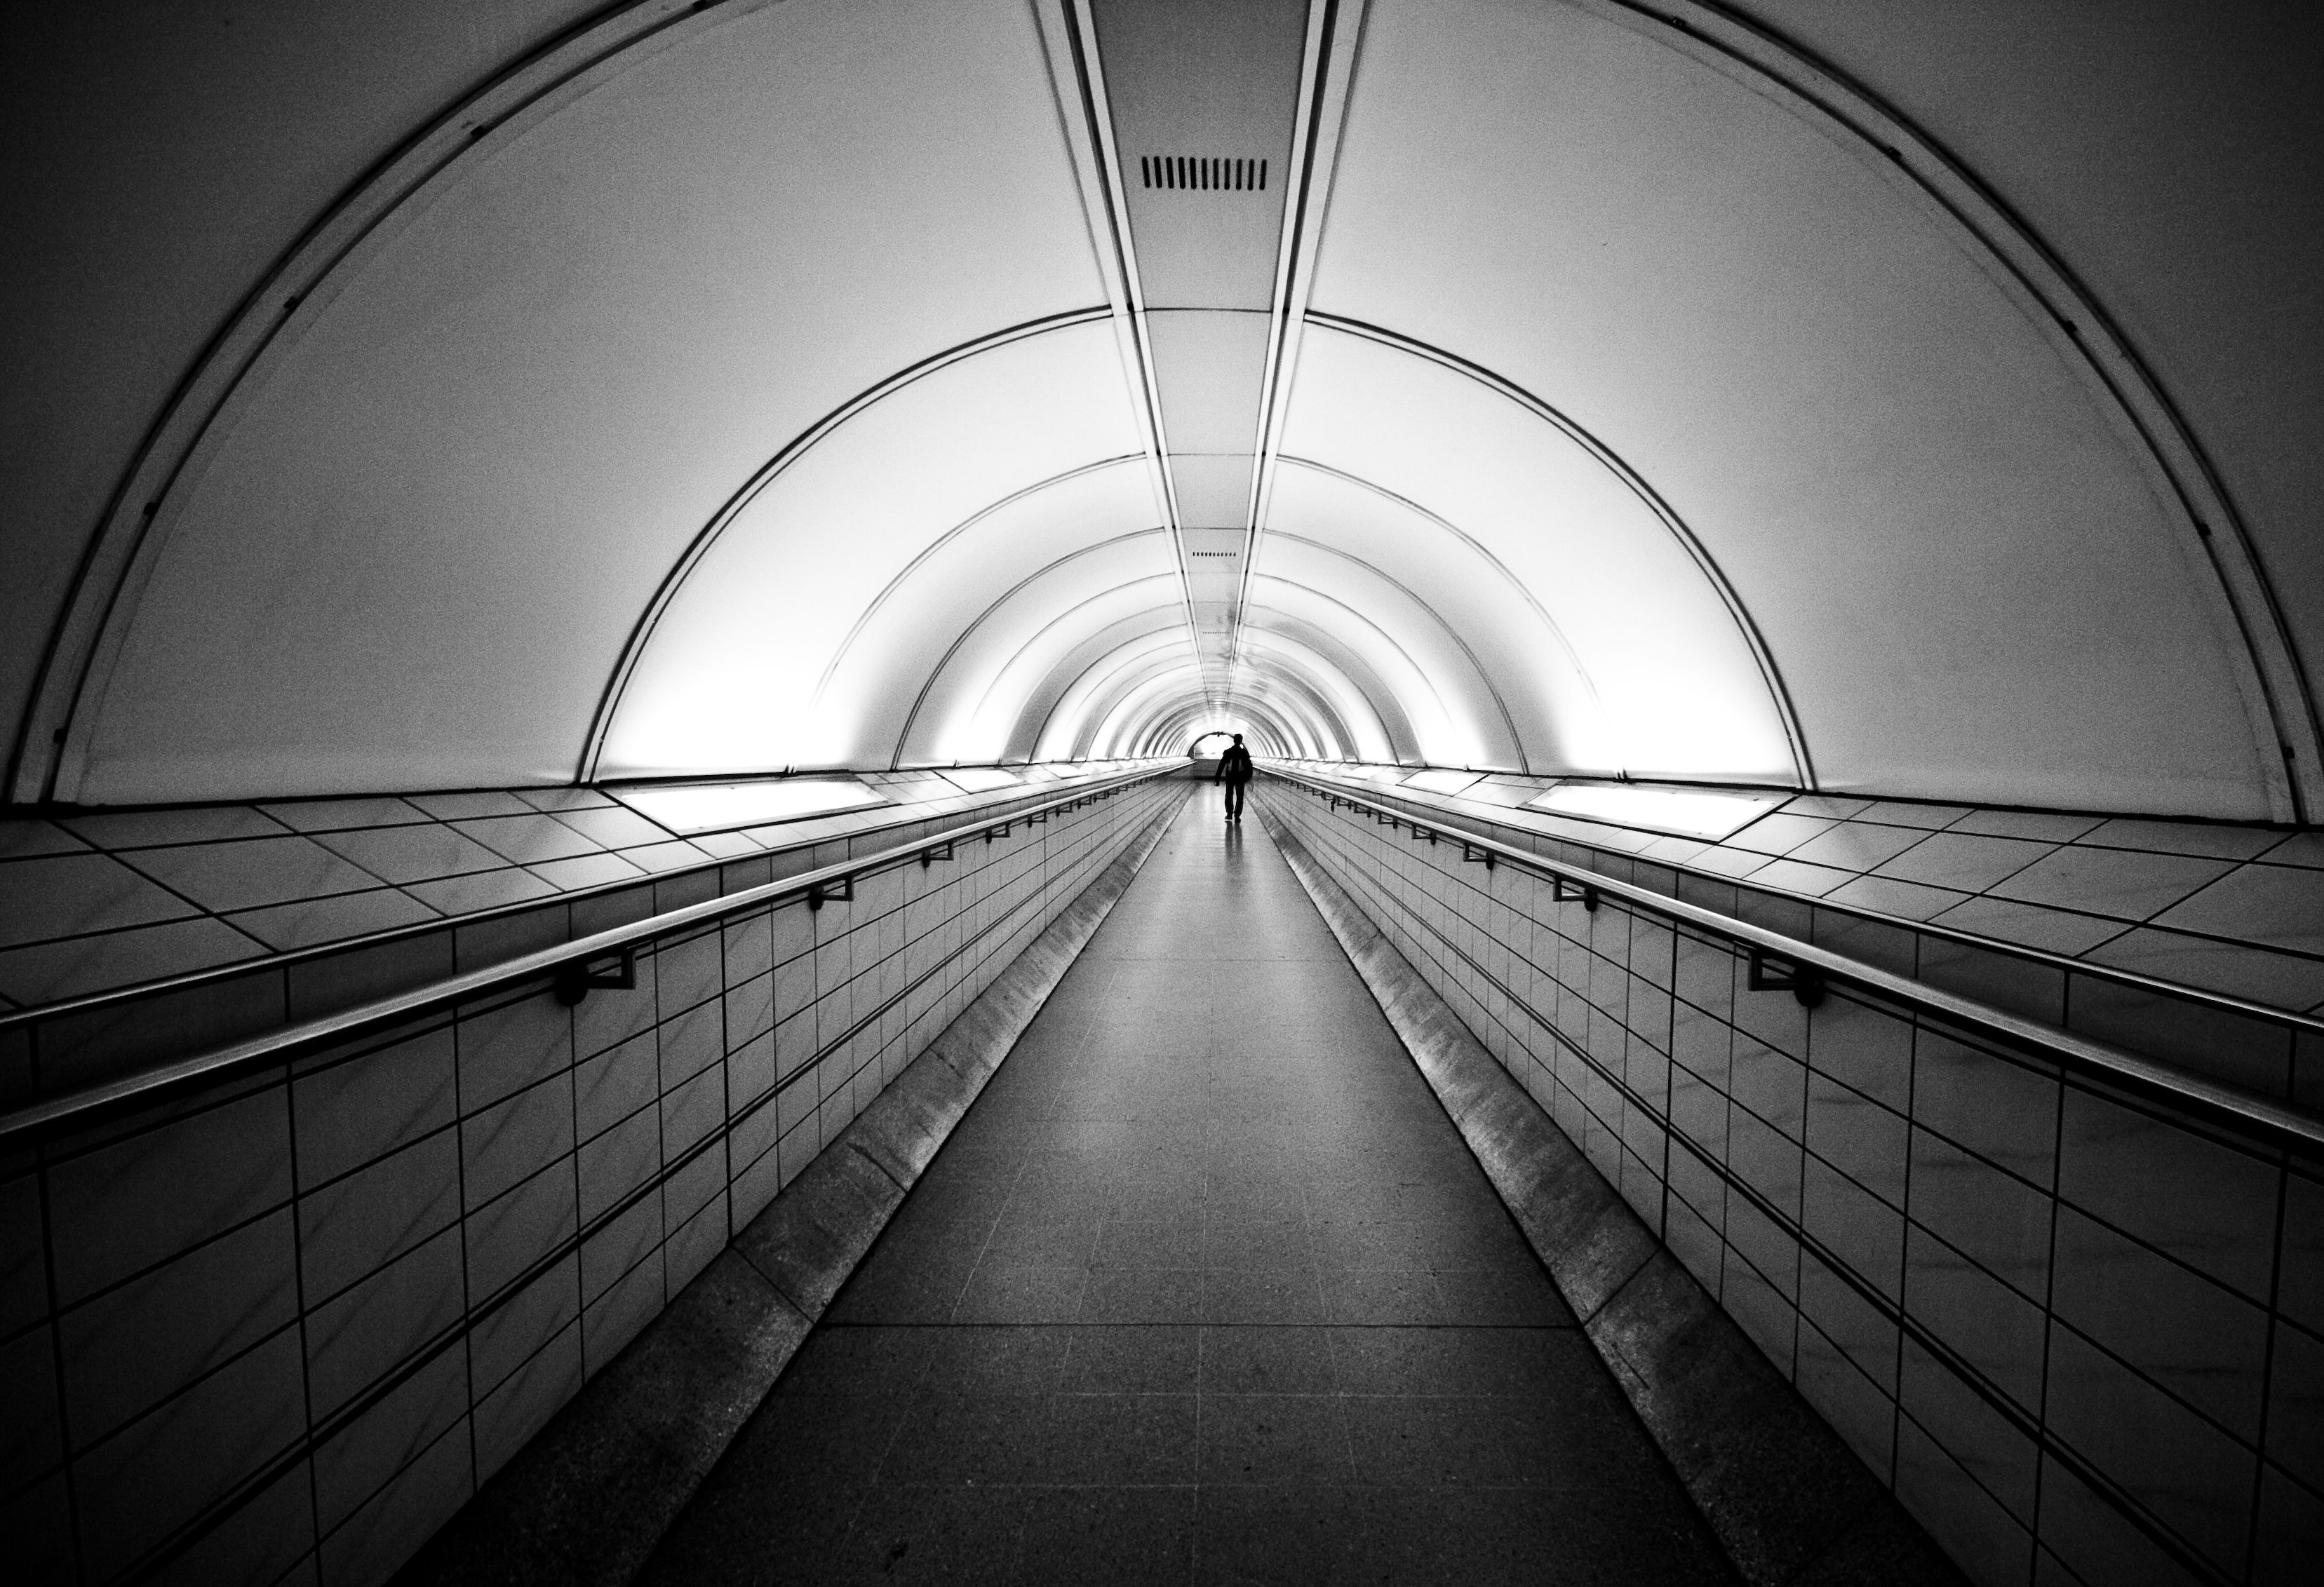 Pin by Rob on Photography Black & White I Surrealism